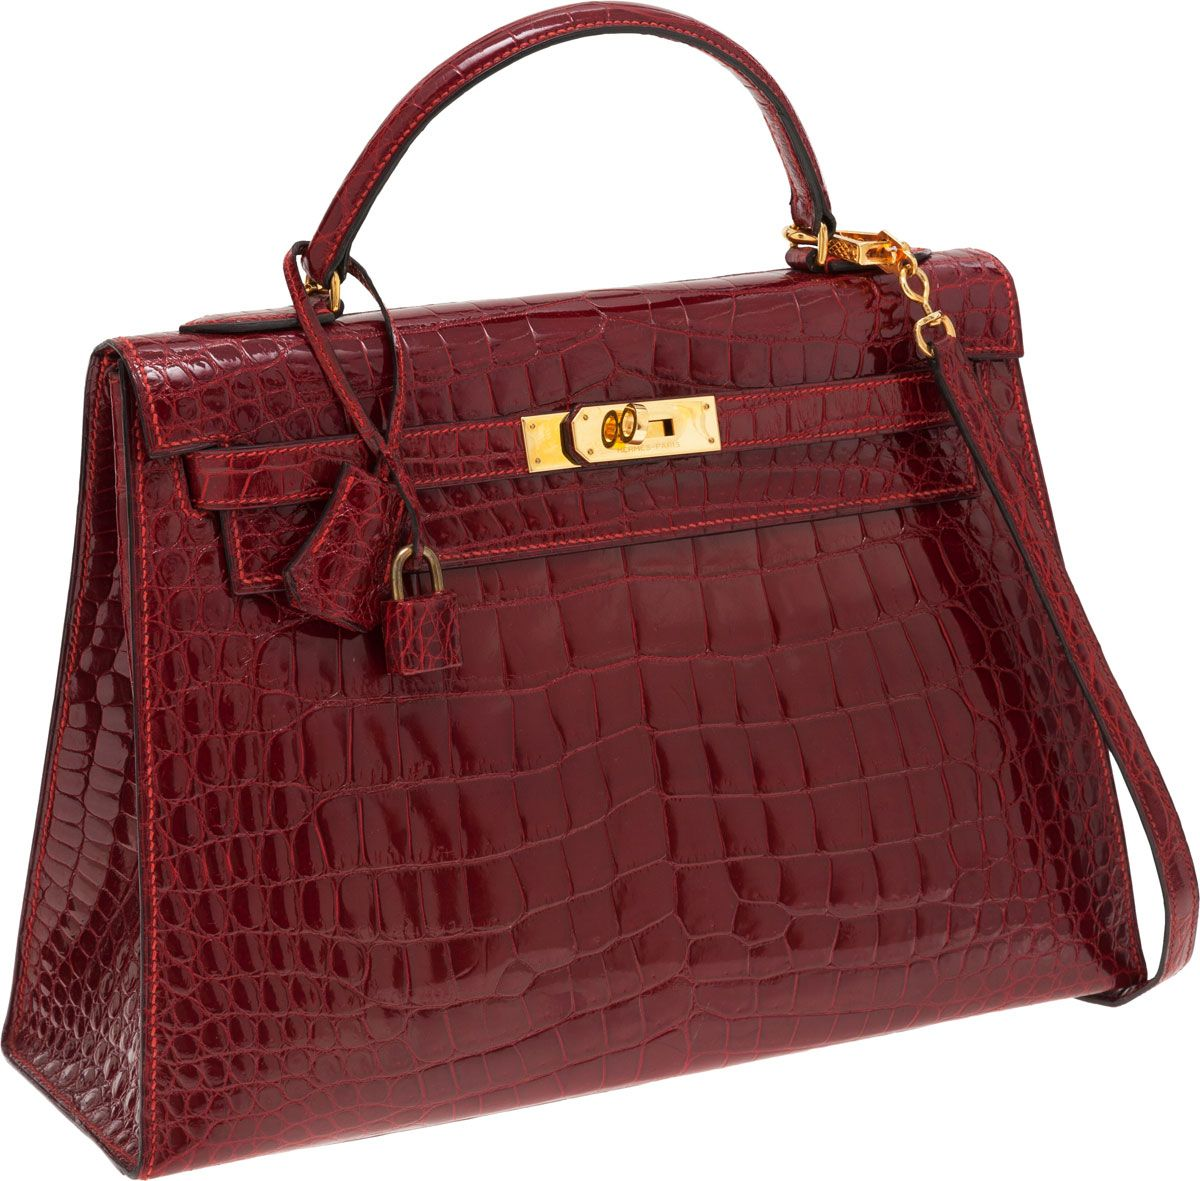 hermes bags for sale - The Top 10 Most Expensive Hermes Products - TheRichest